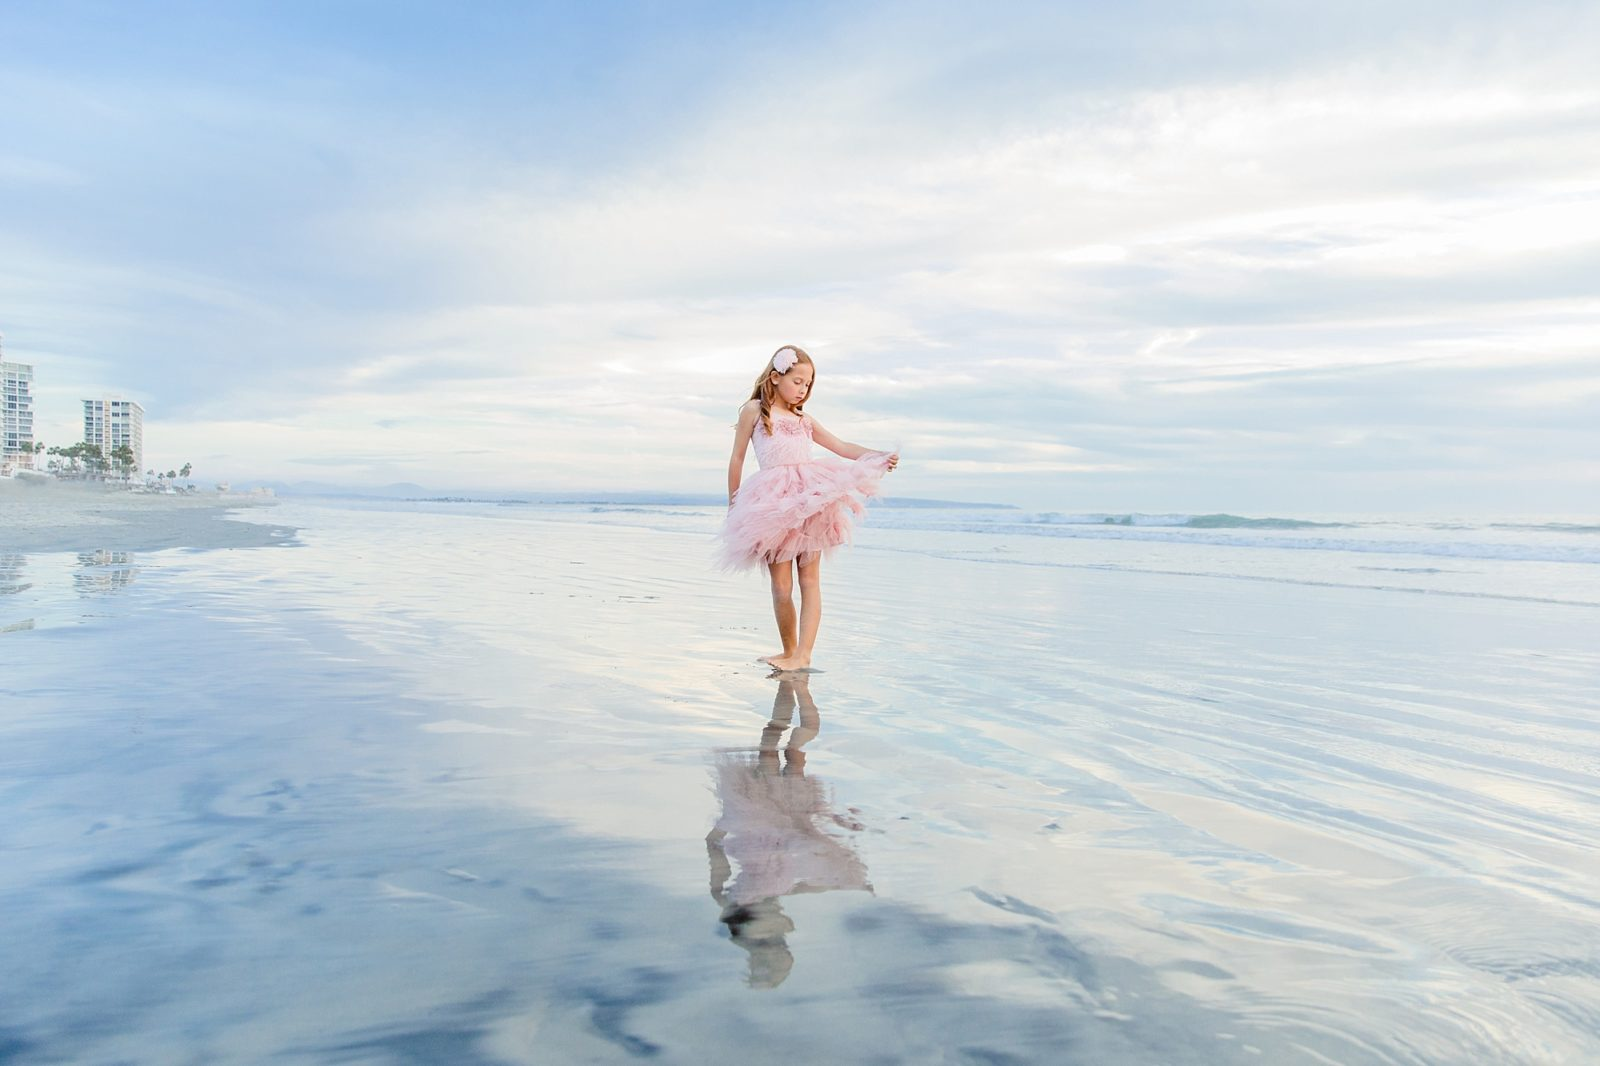 Twirling | Hotel Del Photography